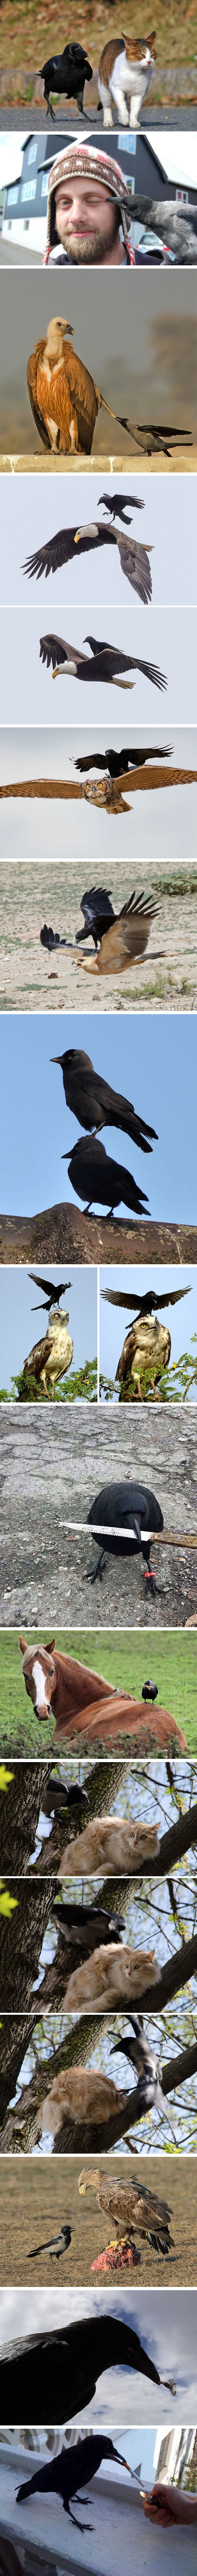 Corvids Are The Biggest Baddasses In The Animal Kingdom